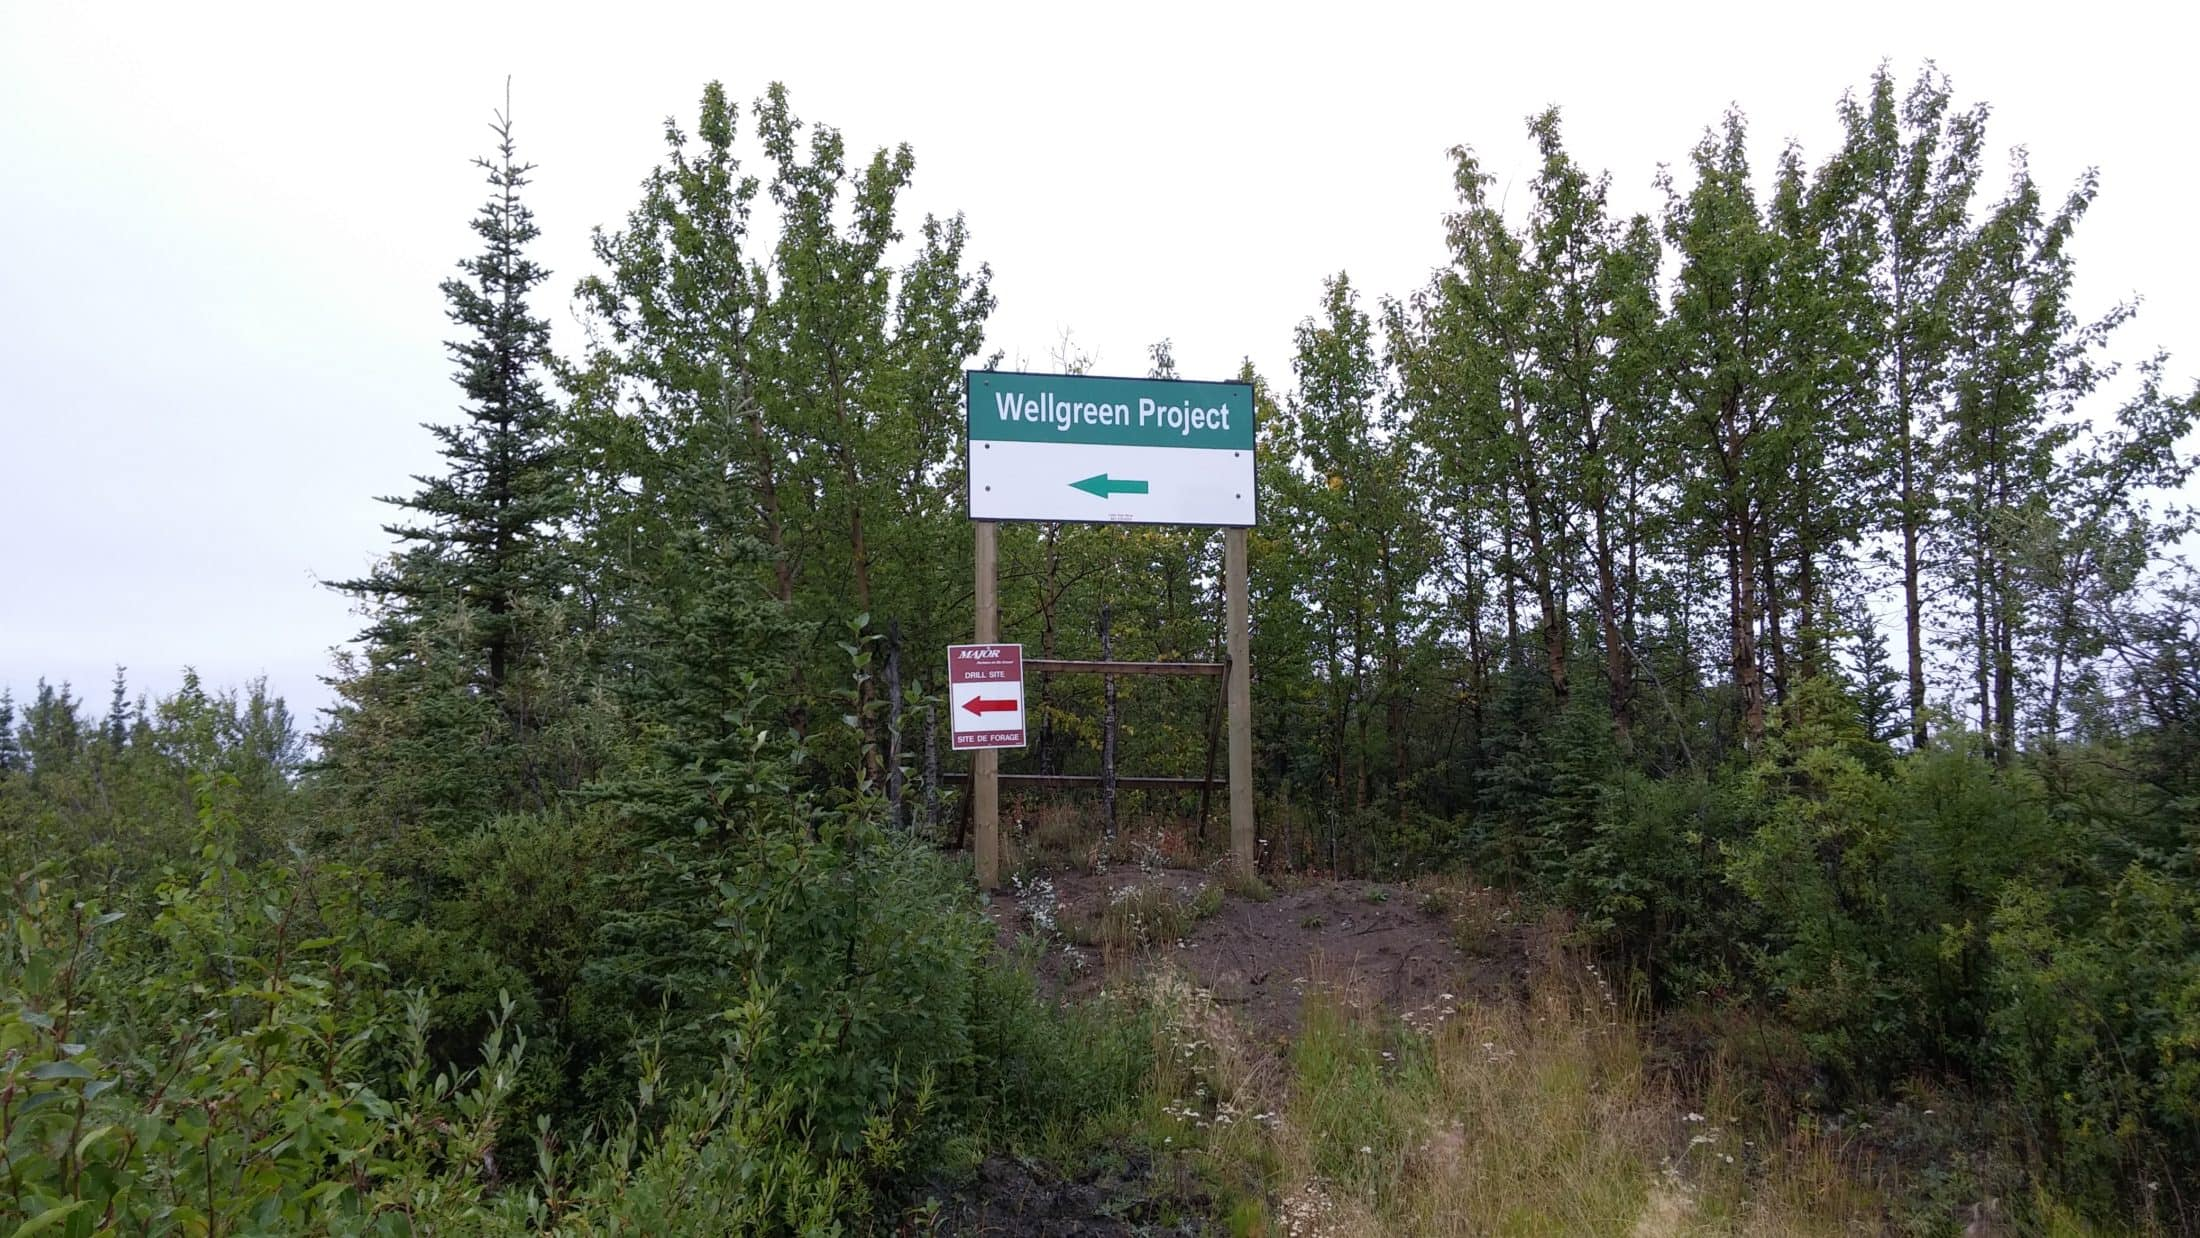 Wellgreen Project Yukon